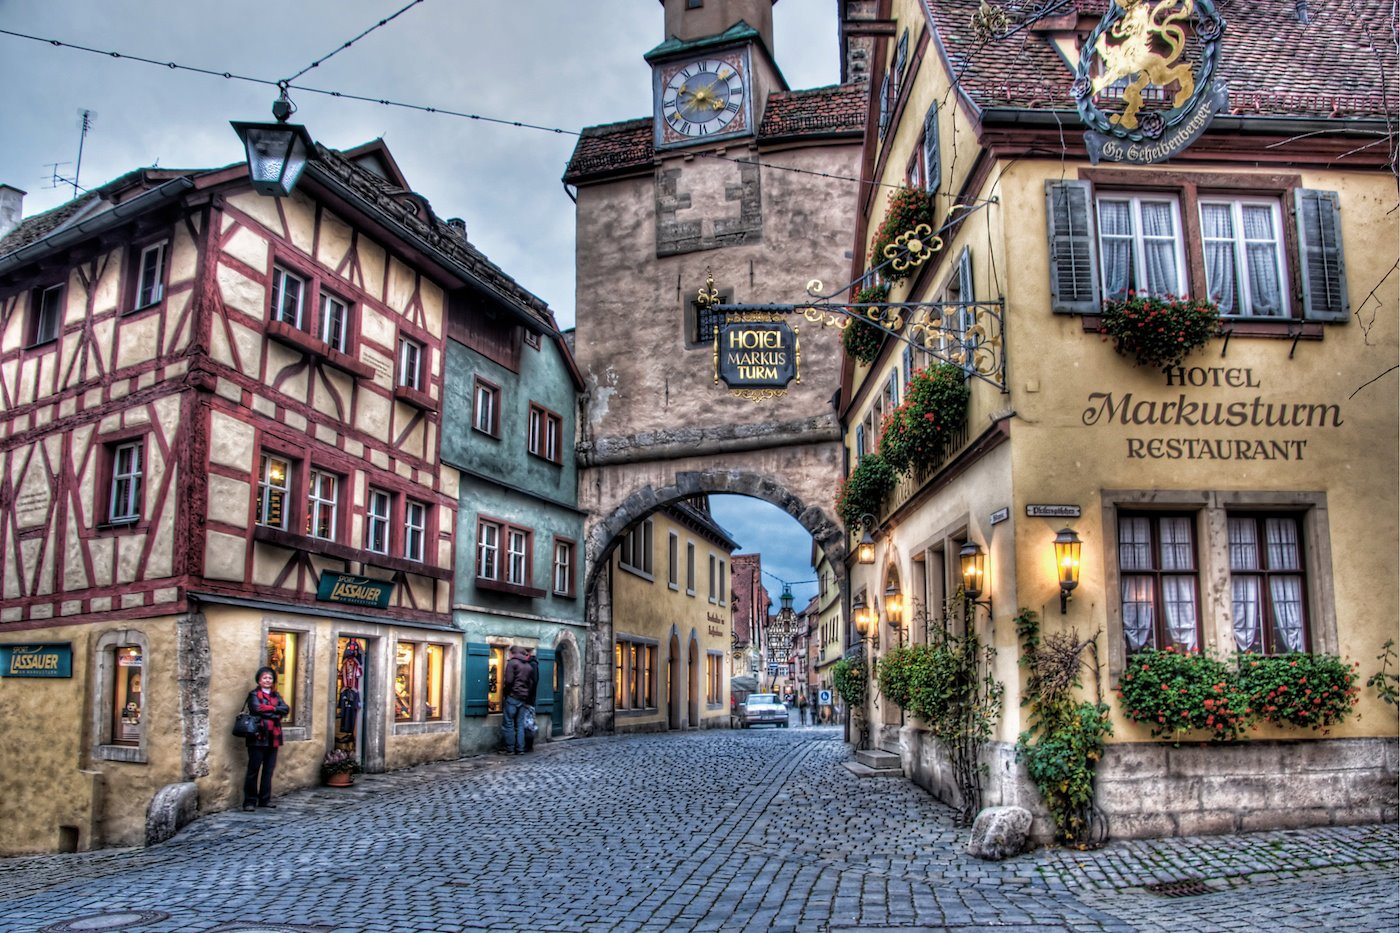 rothenburg_od_der_tauber